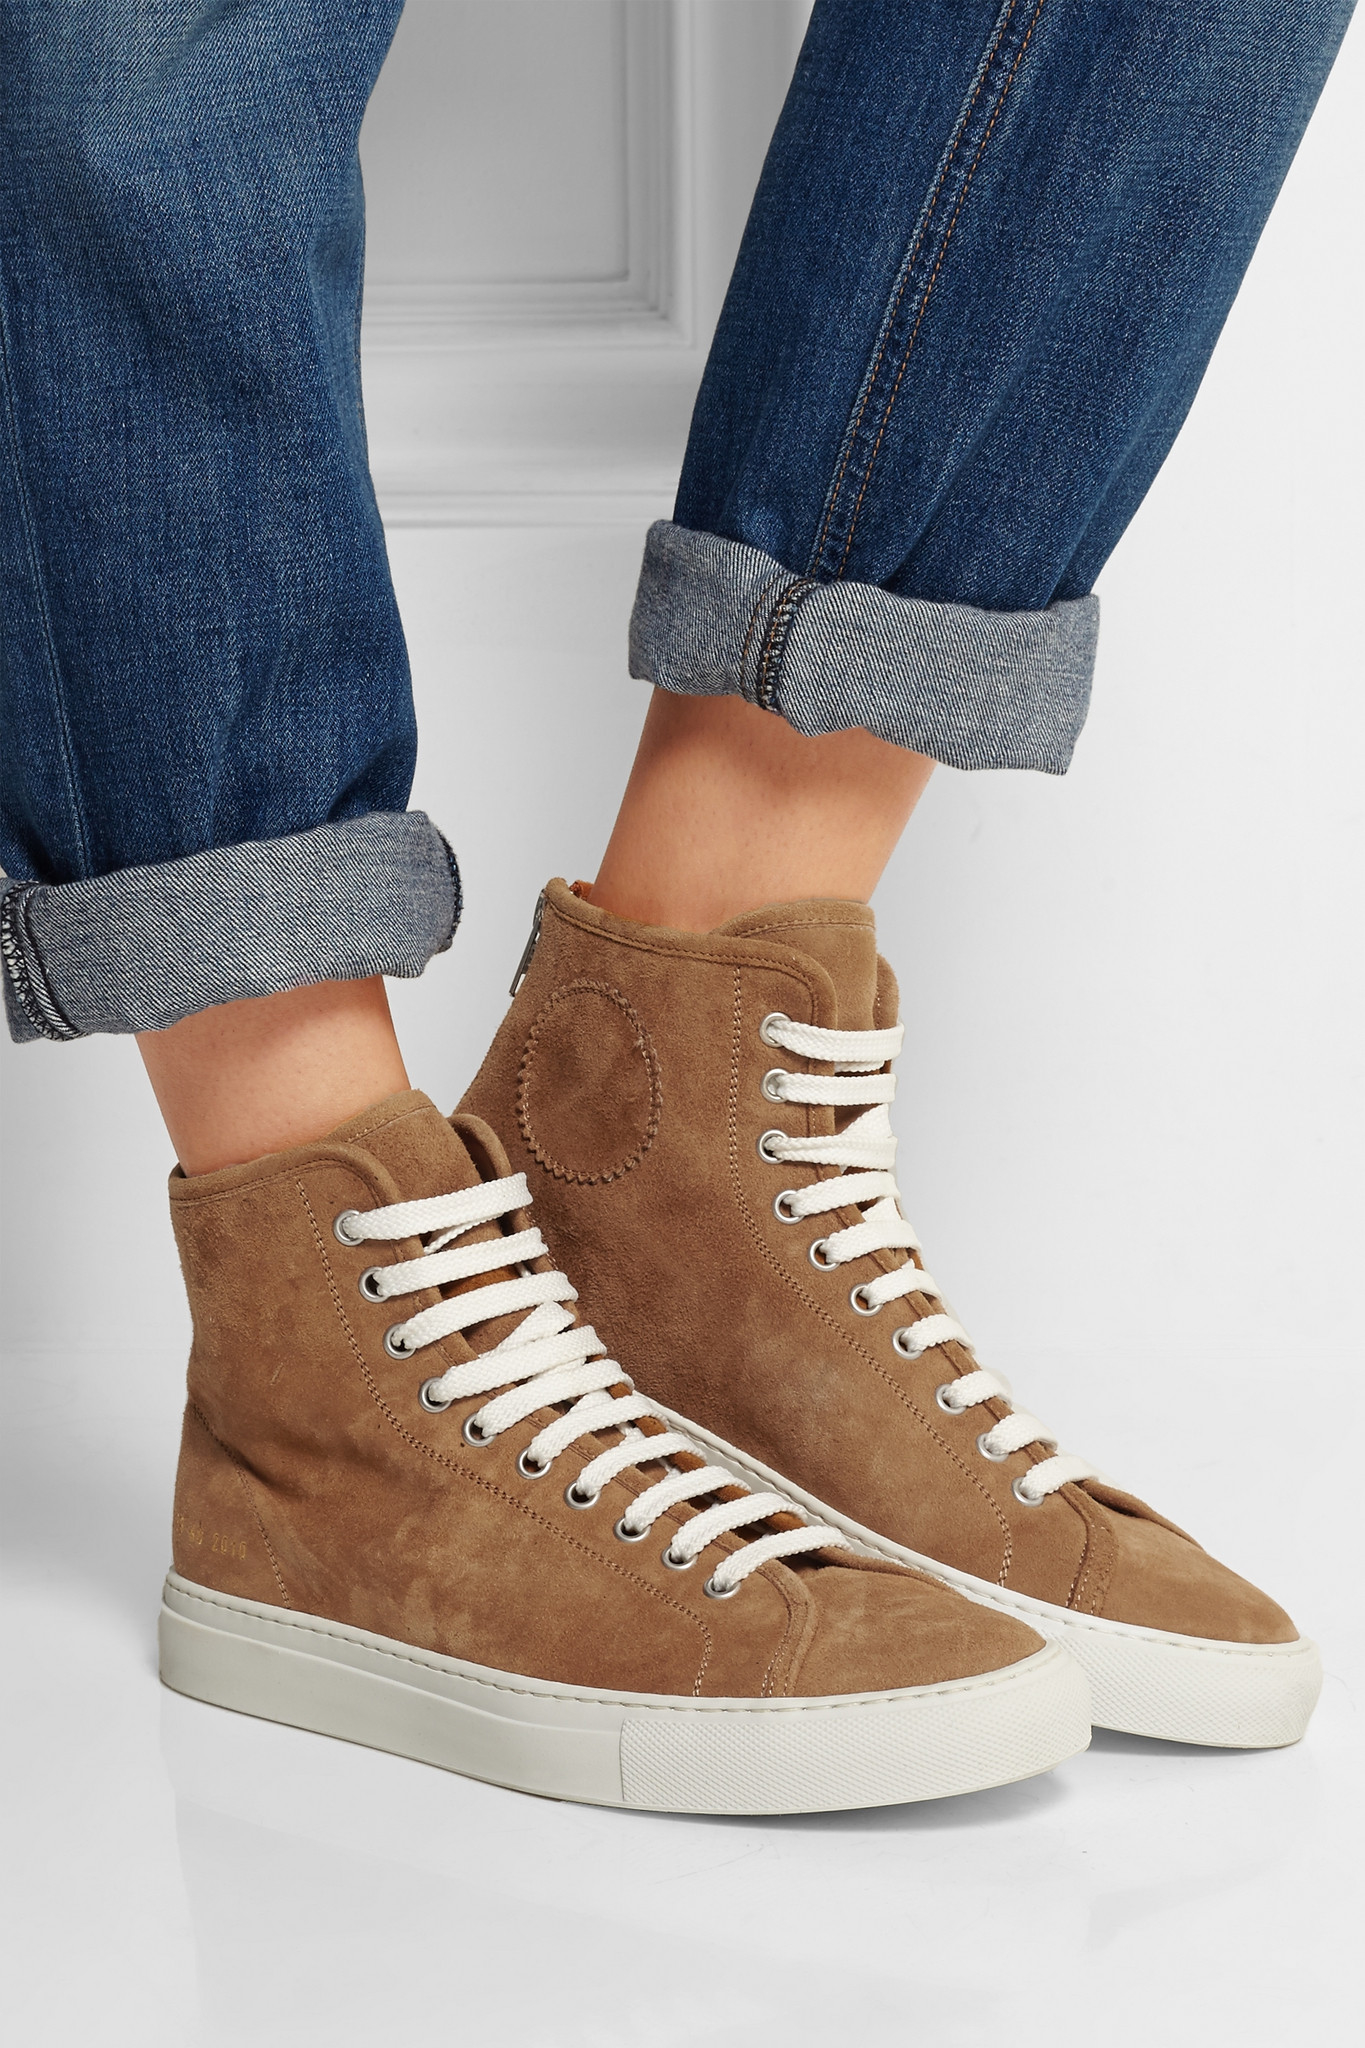 566691c668b9 Common Projects Tournament Suede High-top Sneakers in Brown - Lyst